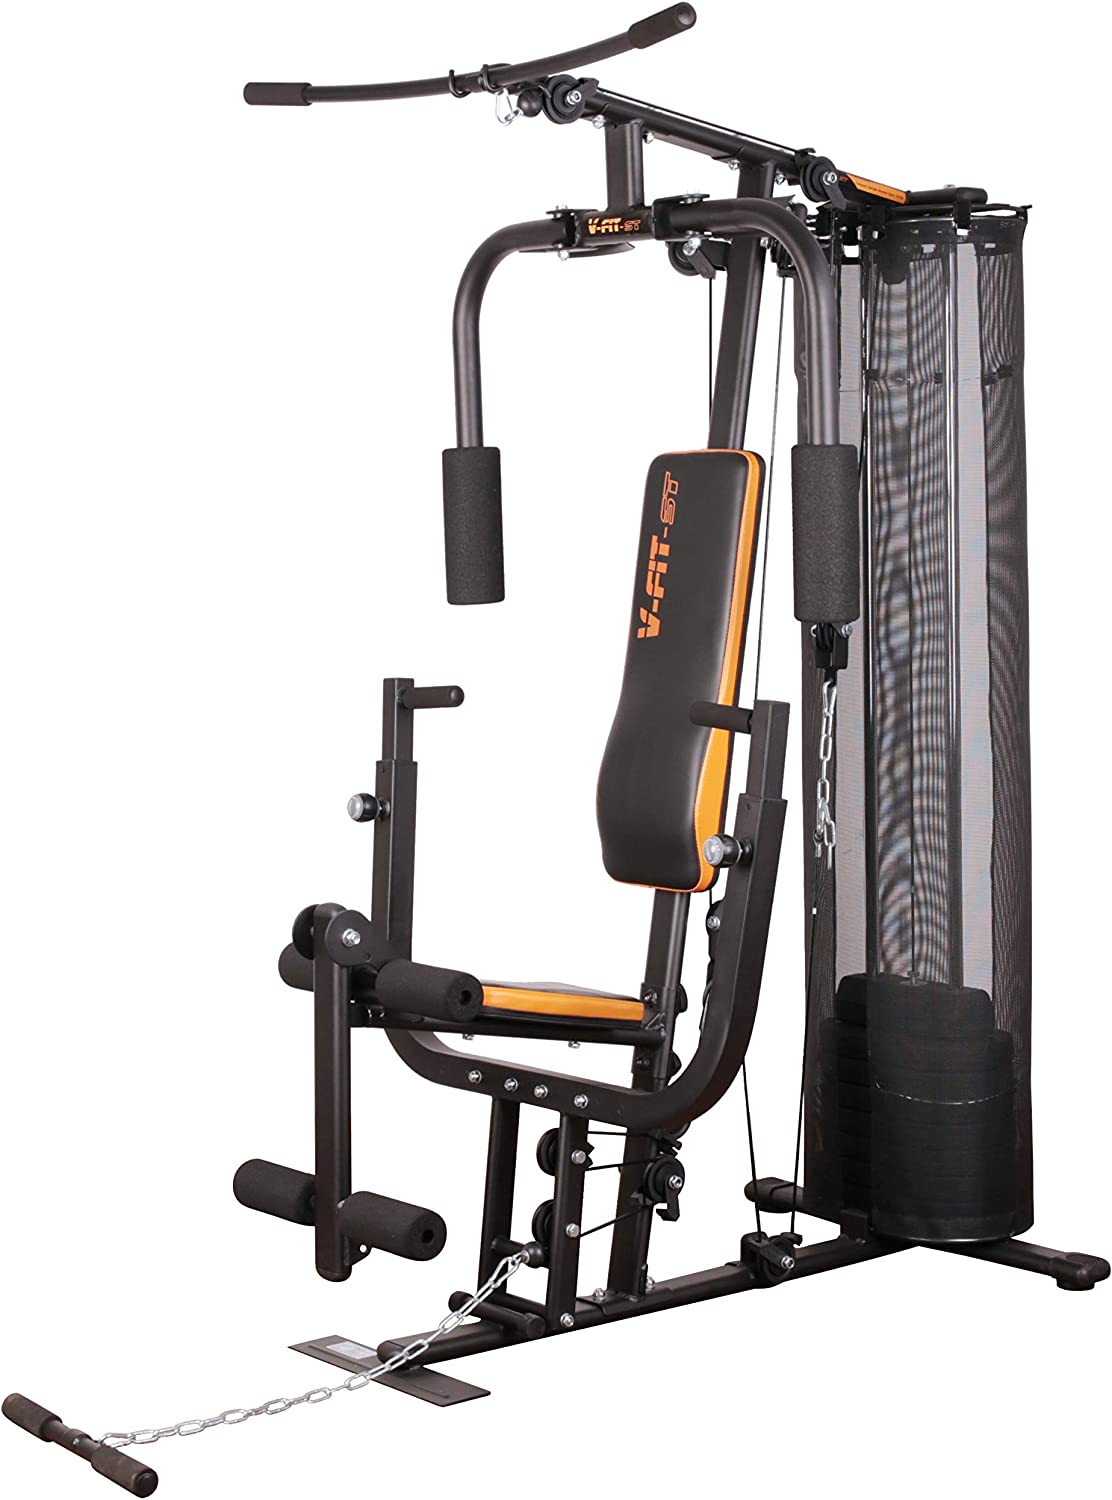 V-fit Unisex's CUG-2 Herculean Compact Upright Home Gym